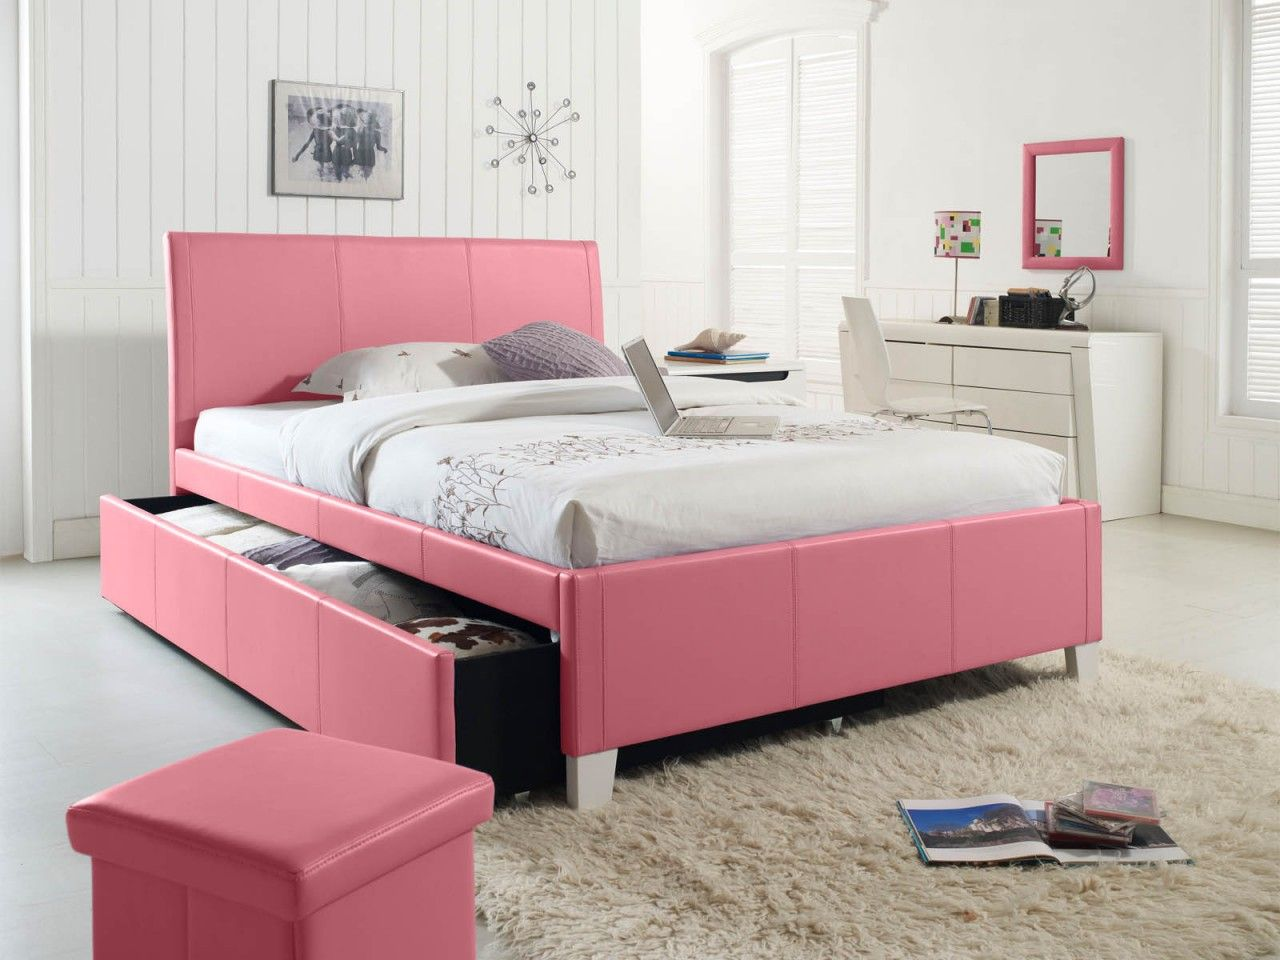 Pretty Beds For Girls Trundle Bunk Beds .furniture Fantasia Twin Upholstered Youth